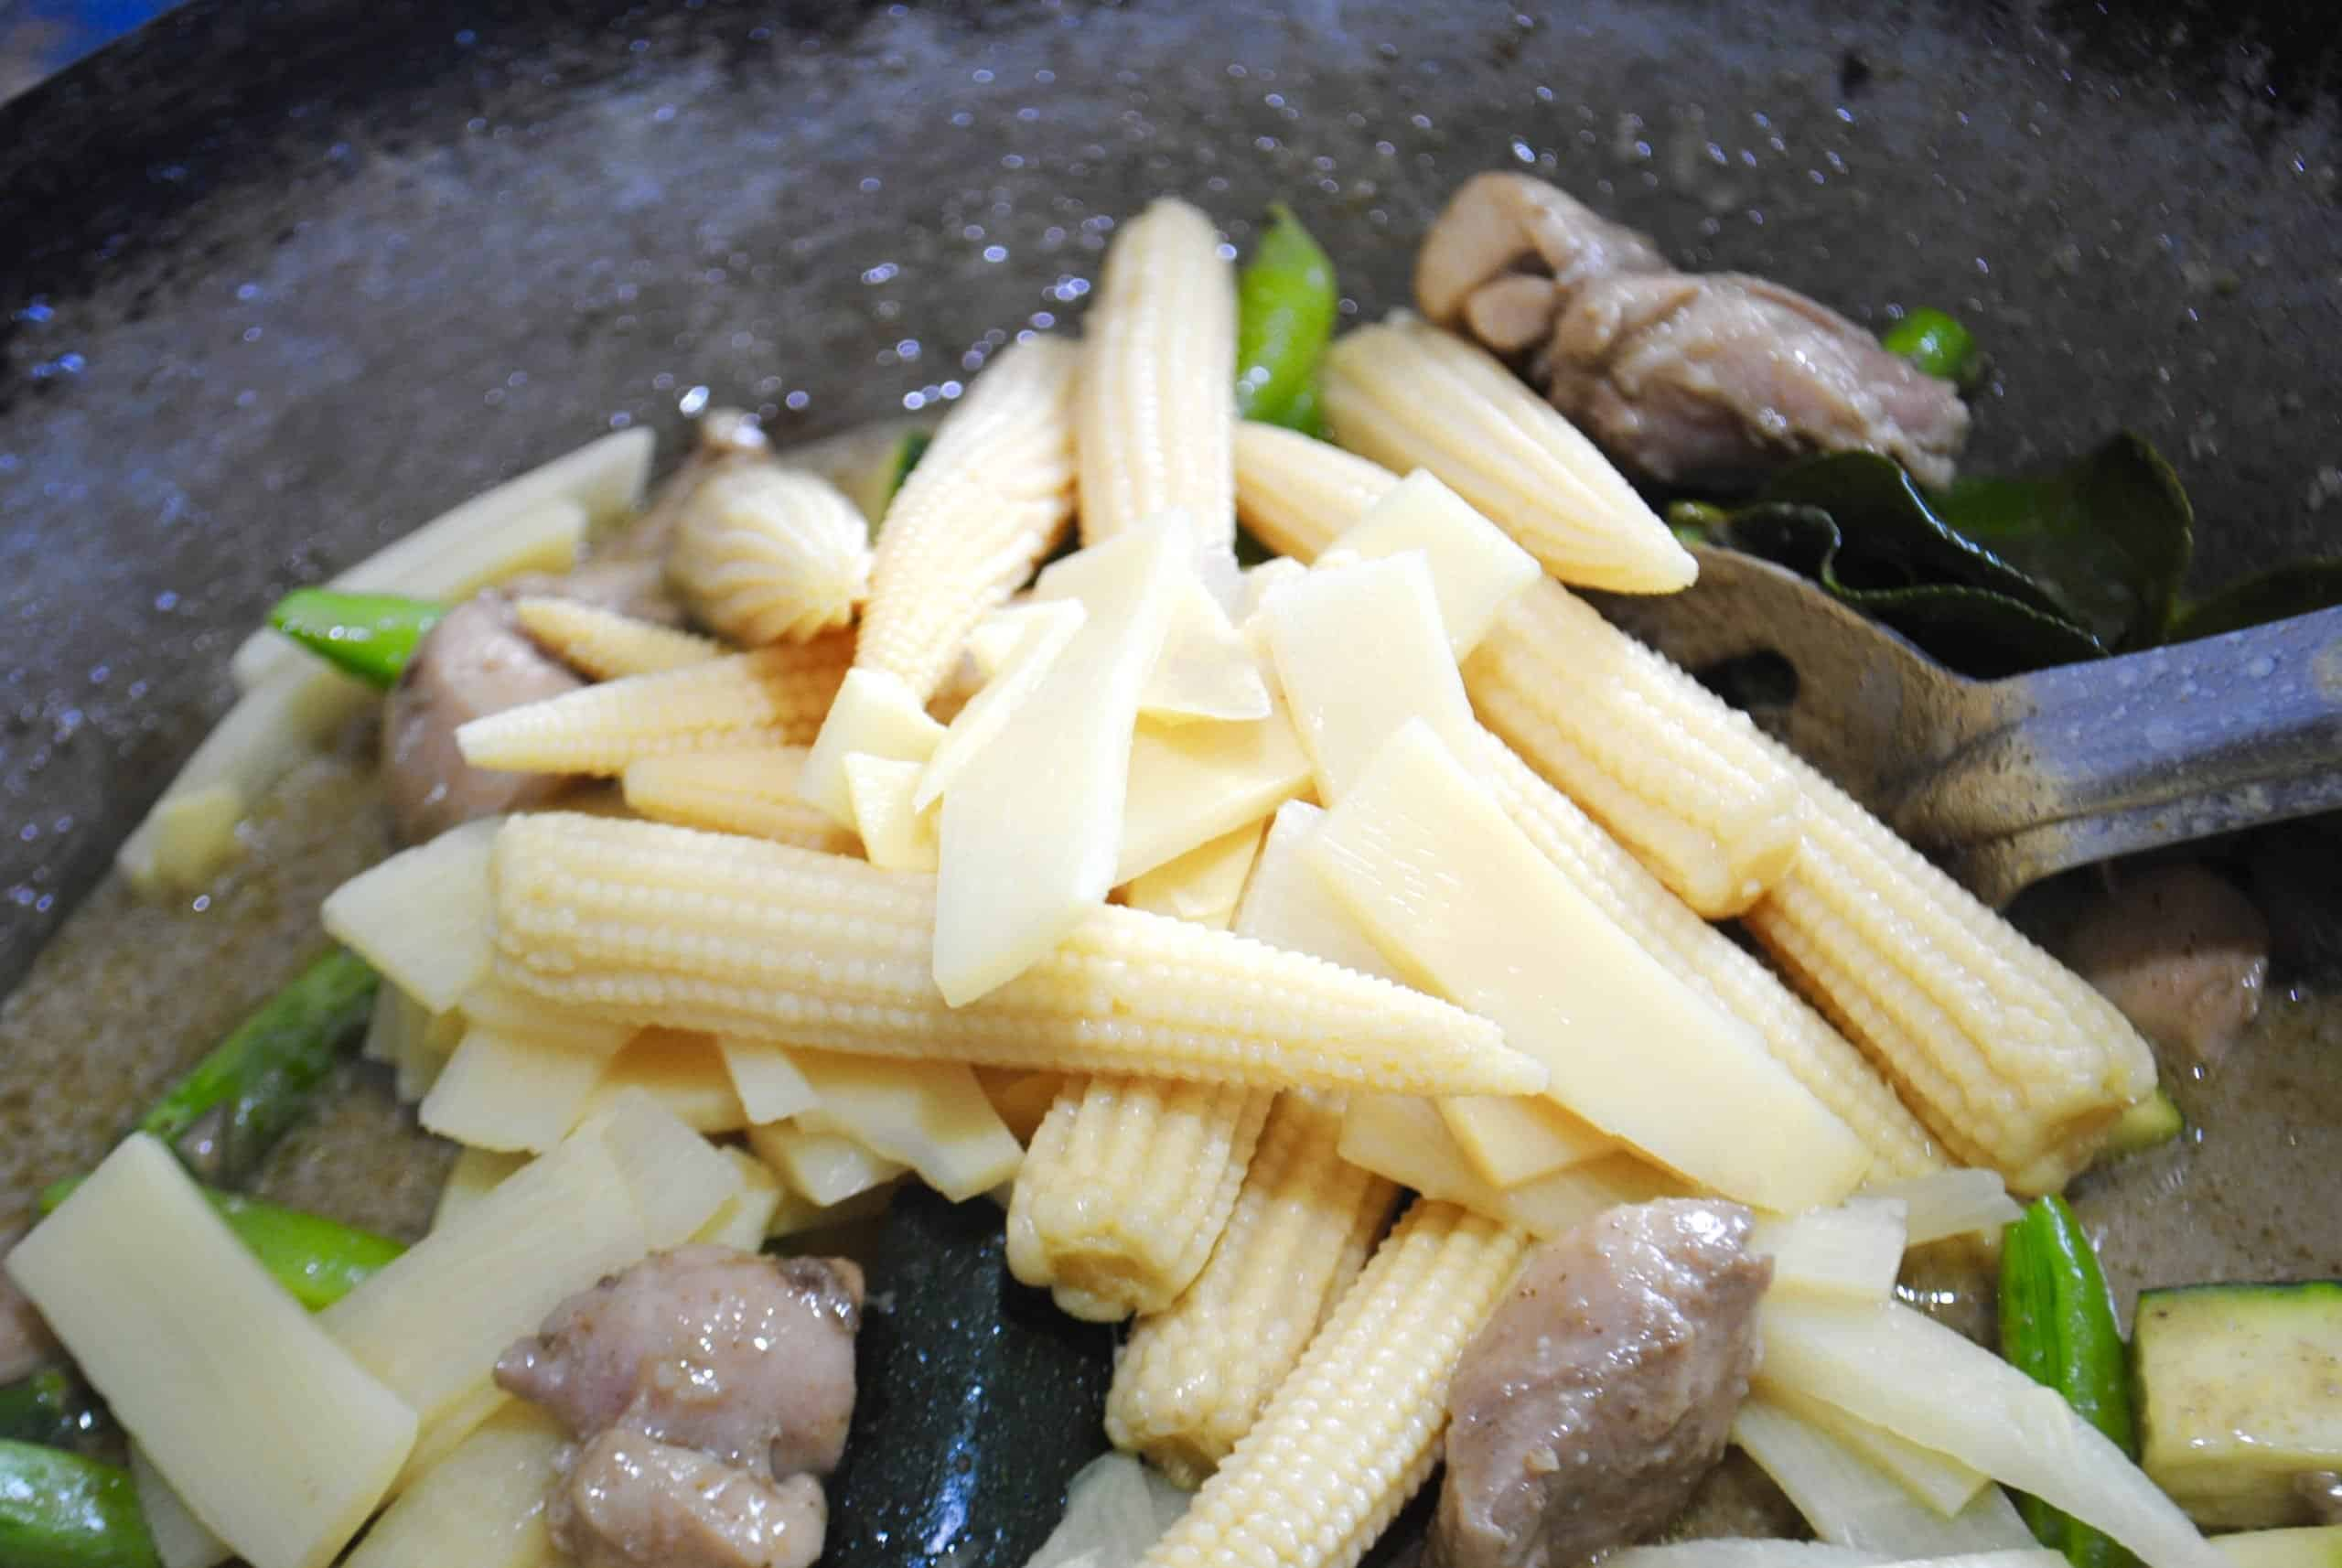 thai green chicken curry adding baby corn spears and bamboo shoots to curry in wok